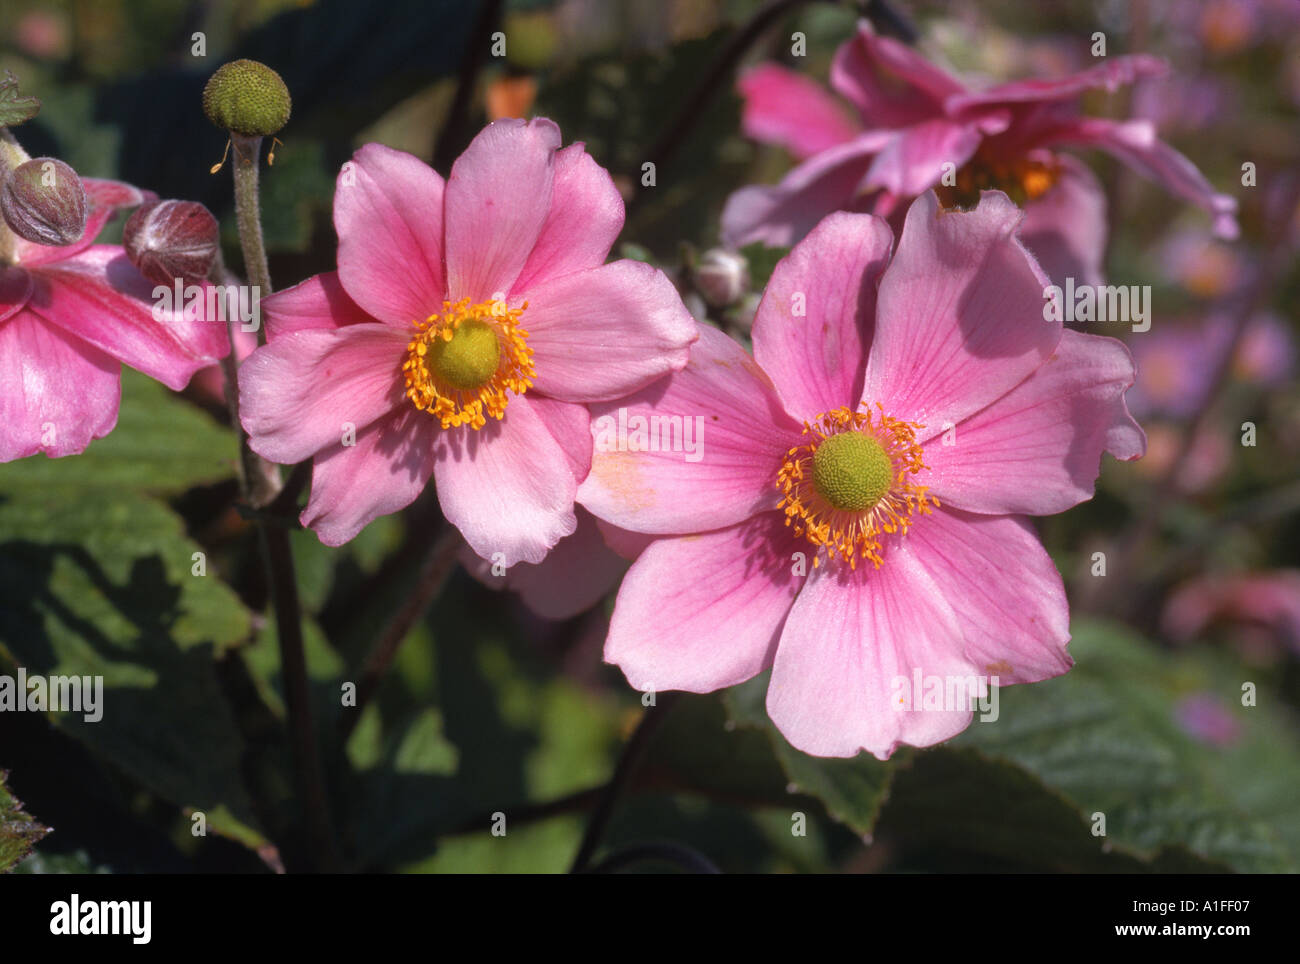 Pink Flowers Of The Japanese Anemone Anemone Japonica Taken In Stock